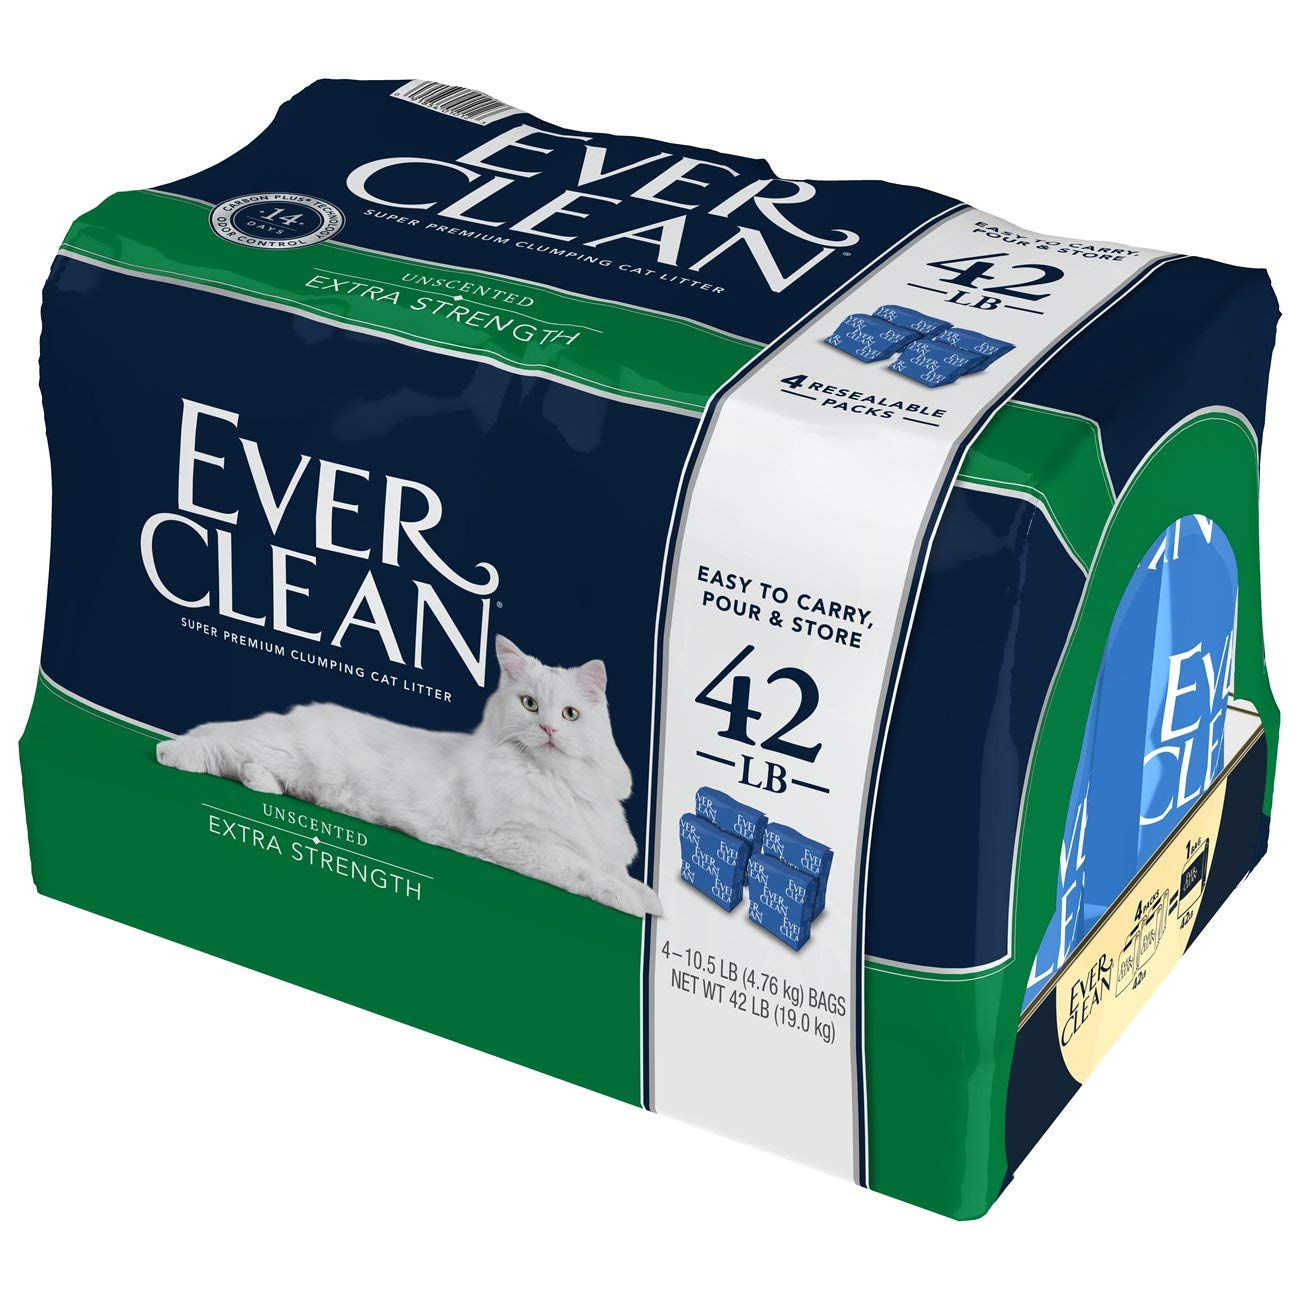 Ever Clean Extra Strength Cat Litter, Unscented, 42 Pound Bag (Packaging May Vary) by Ever Clean